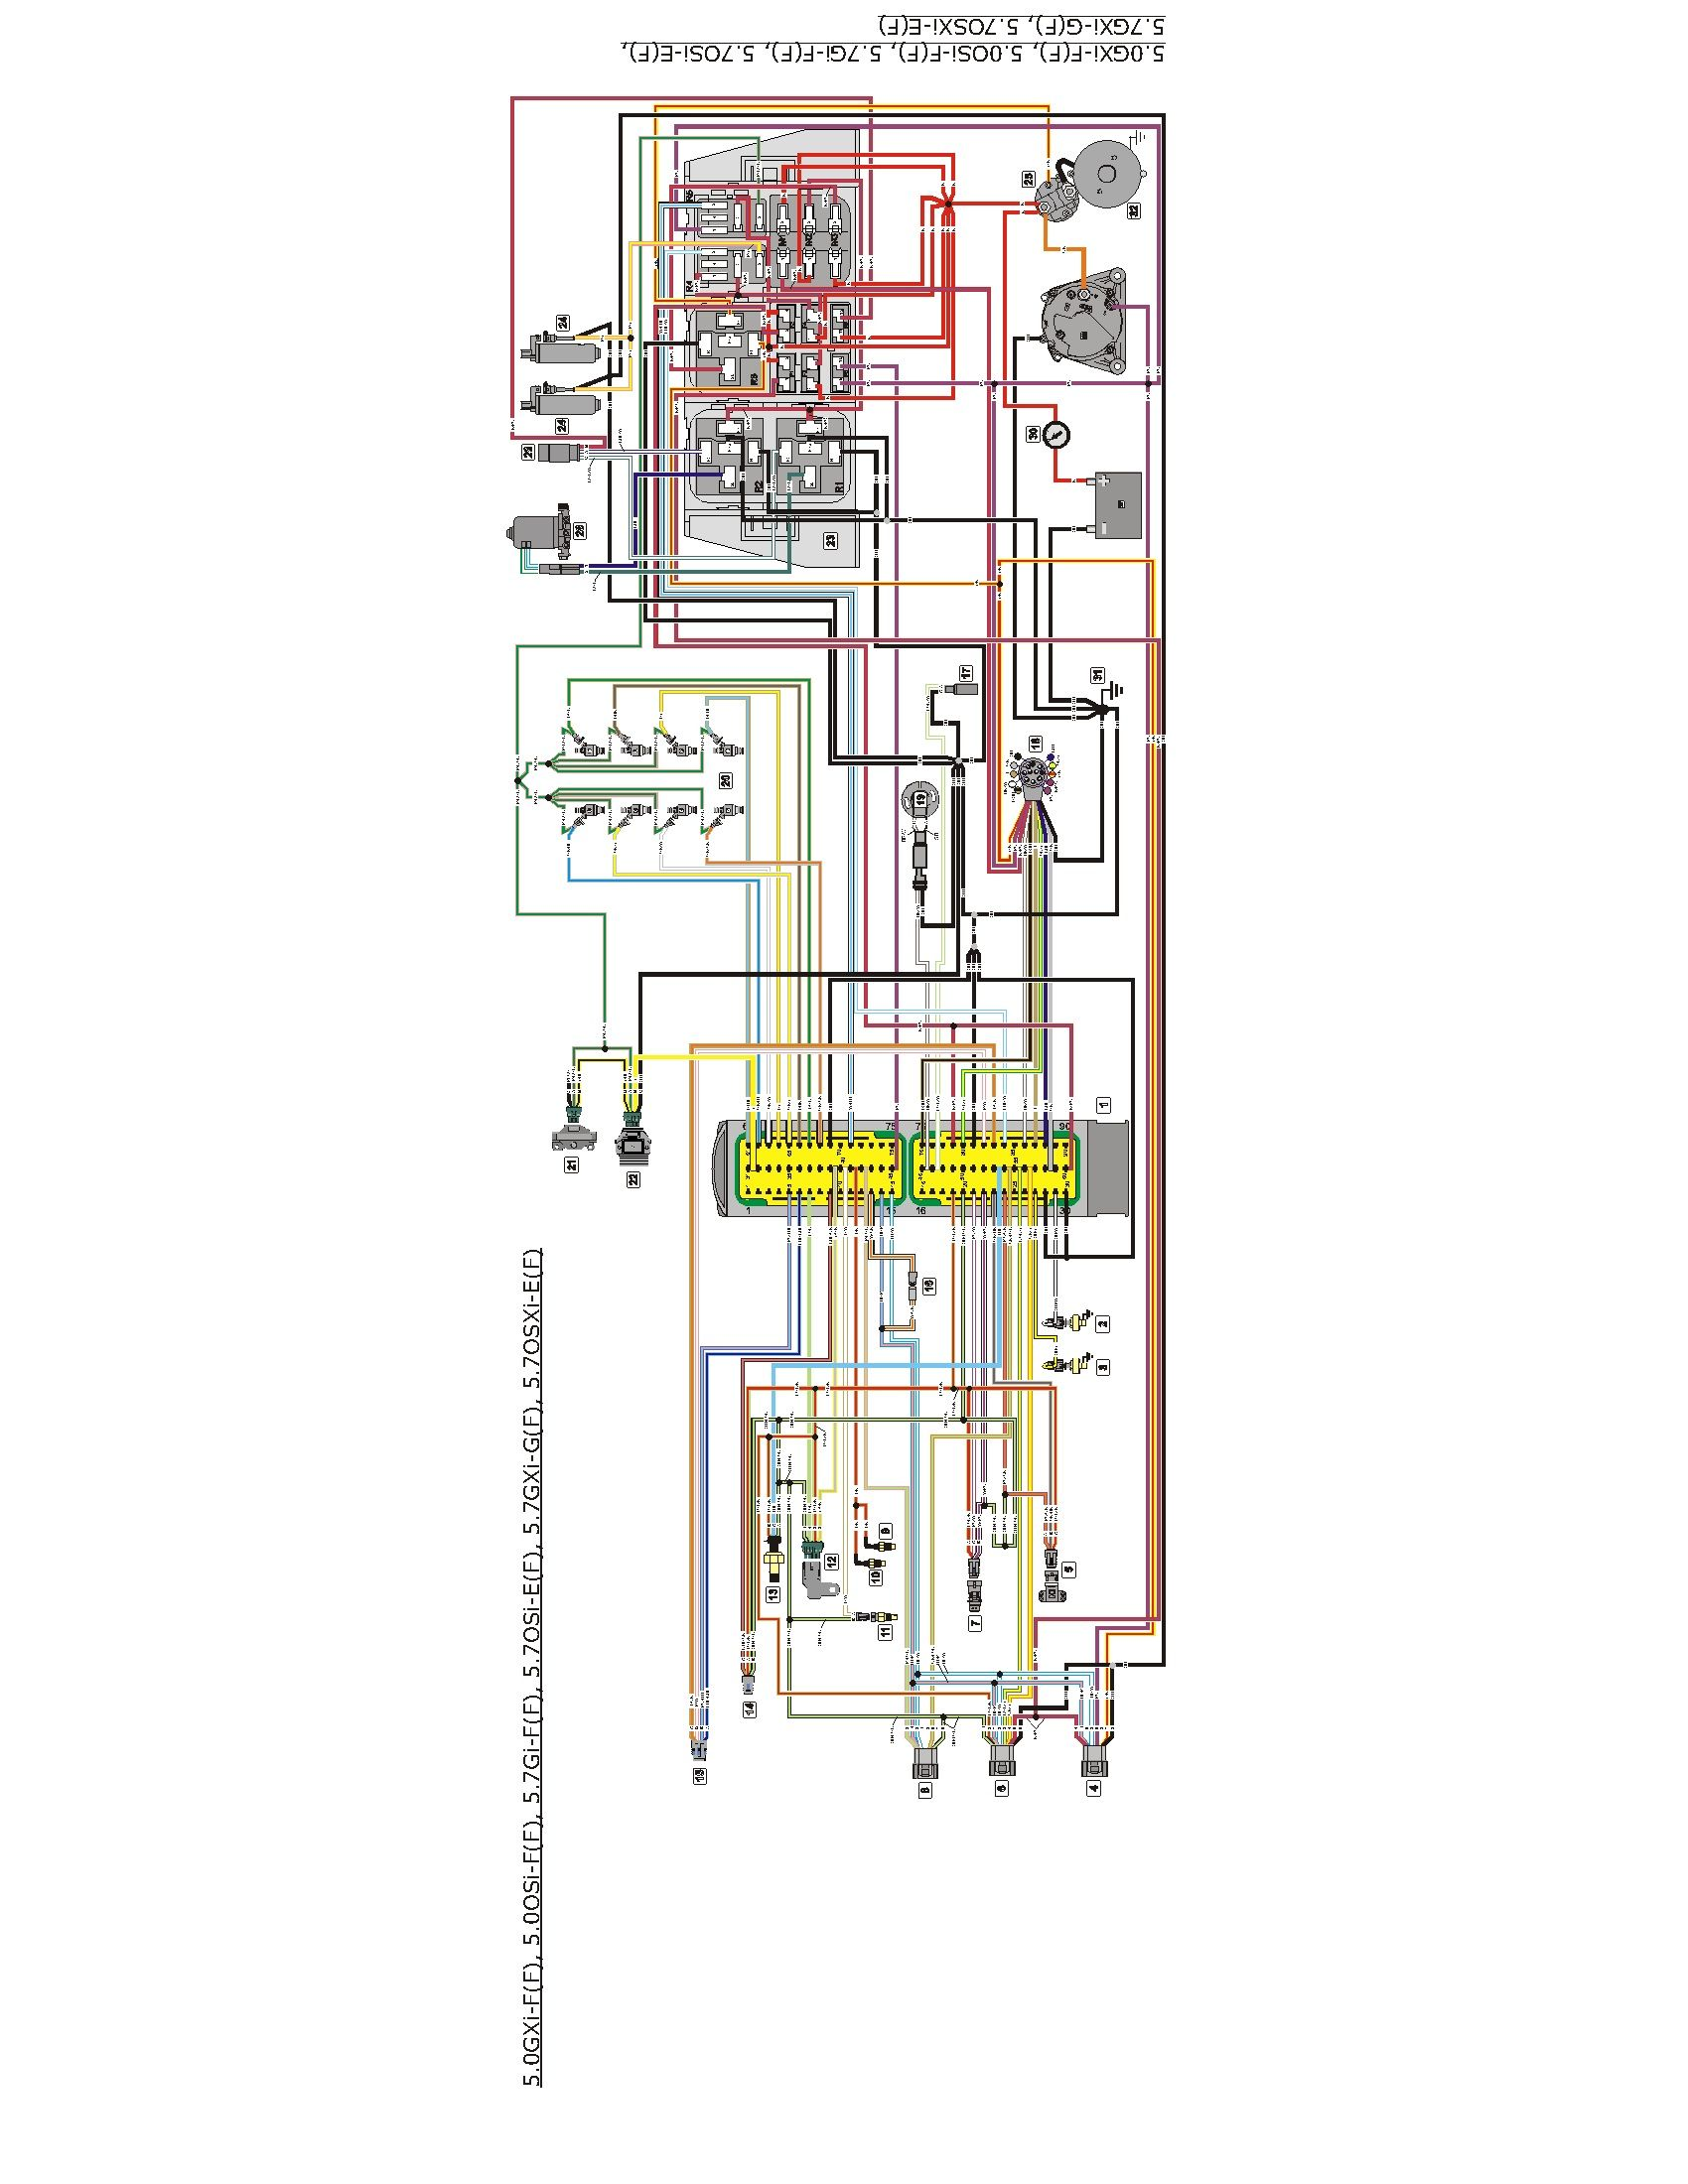 Volvo Penta 5.7 Engine Wiring Diagram Mercury Outboard, Boat Engine, Home  Design, Boats